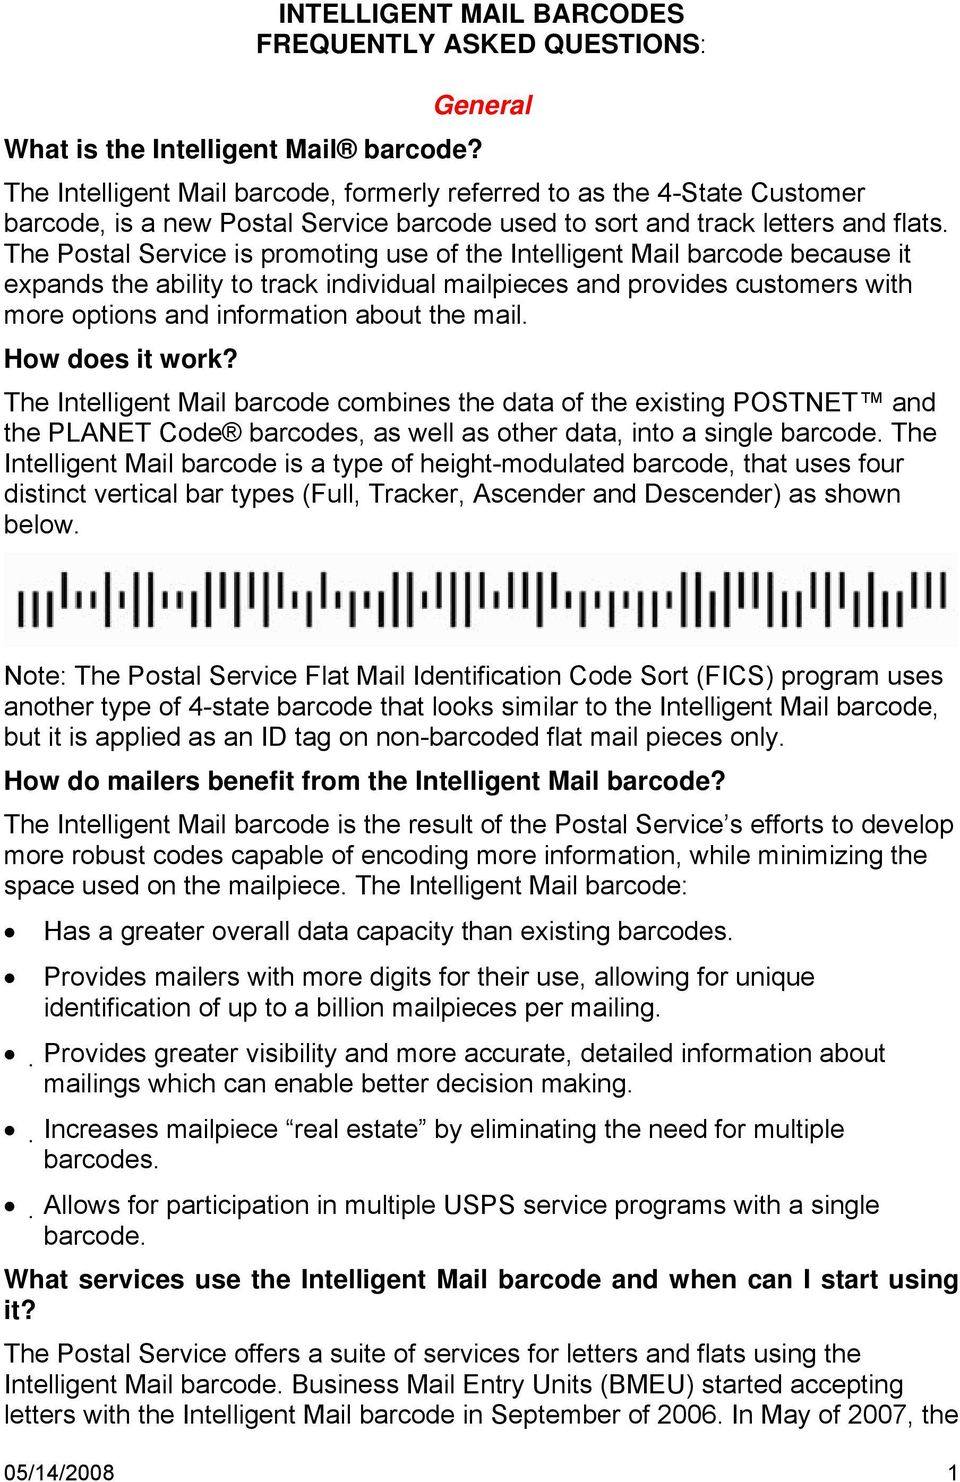 The Postal Service is promoting use of the Intelligent Mail barcode because it expands the ability to track individual mailpieces and provides customers with more options and information about the